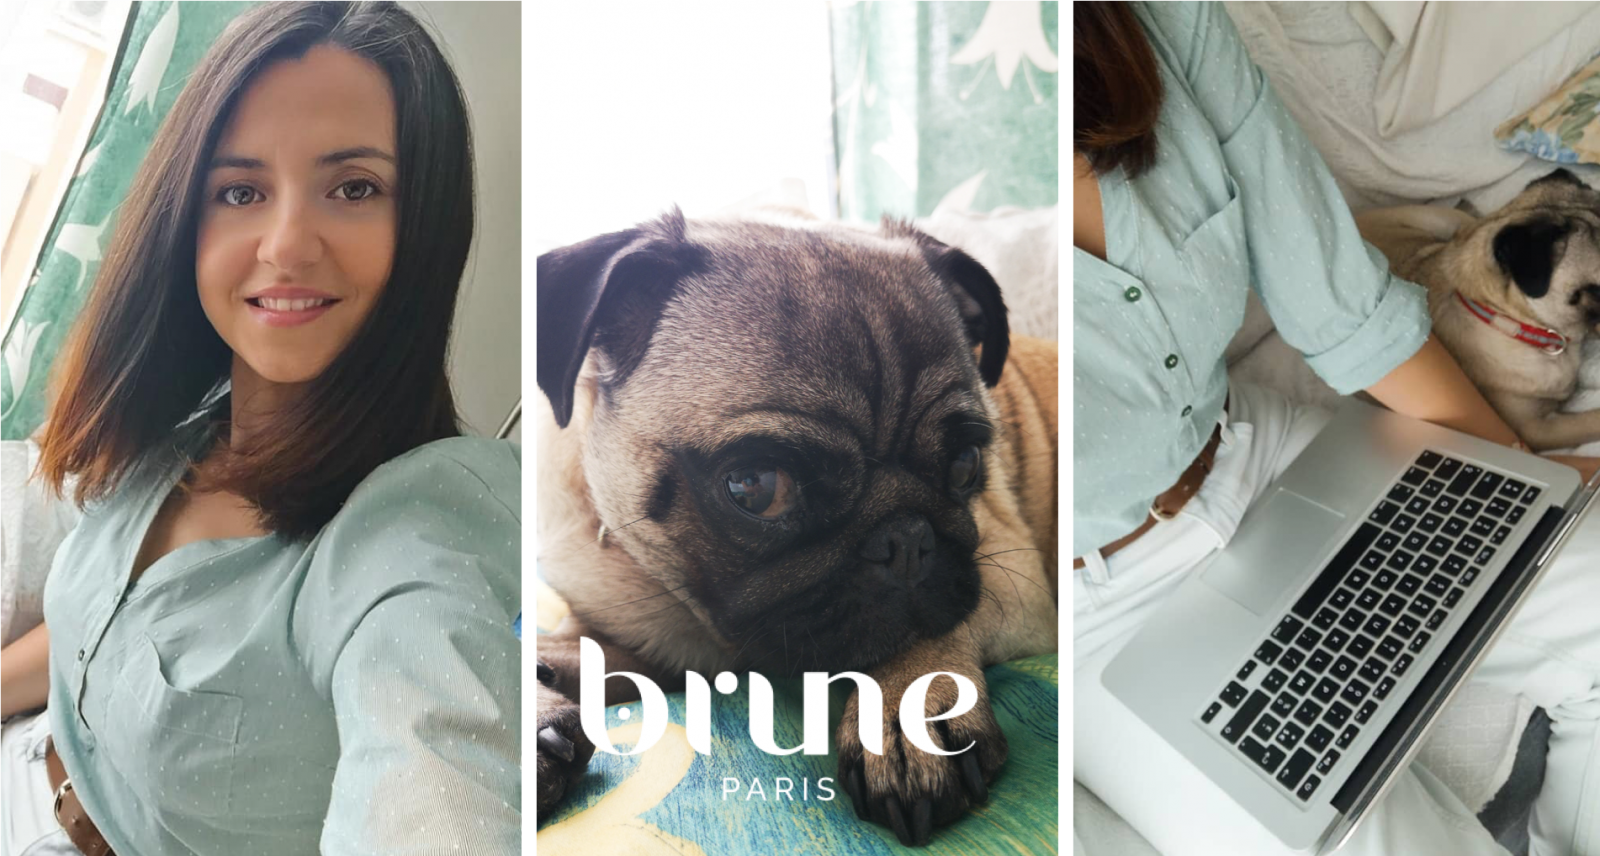 Brune paris concept store blog